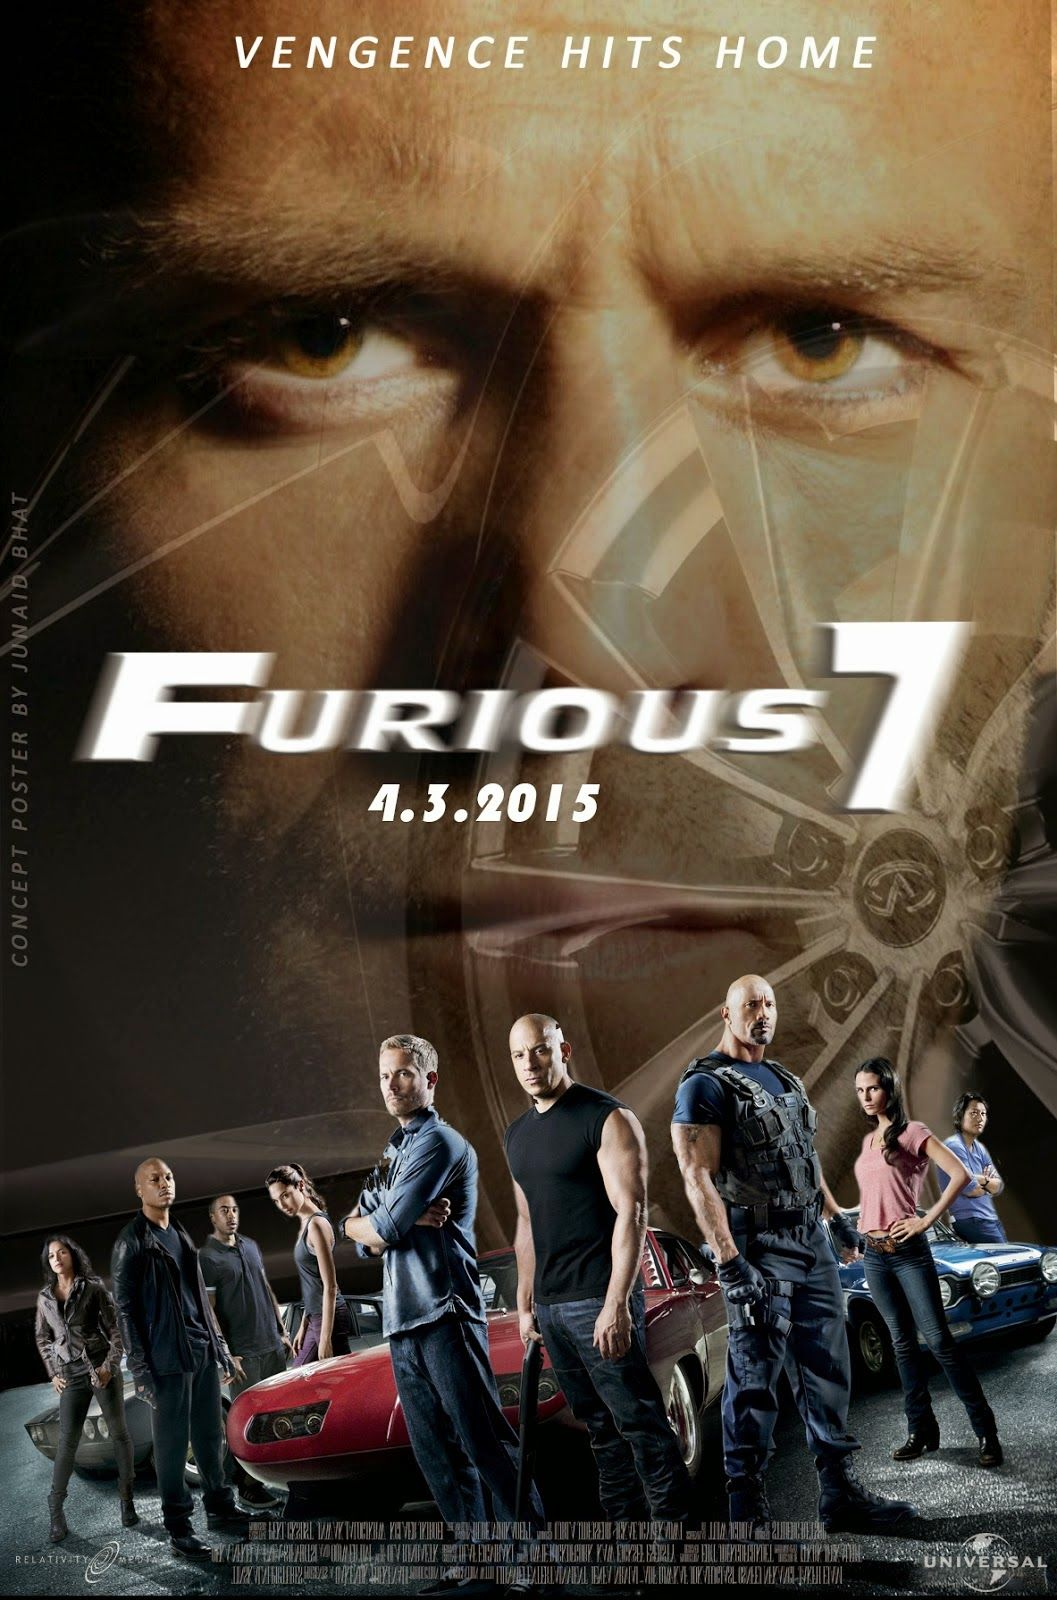 Download Full Hd Movie Free Fast And Furious 7 Movie Fast And Furious Furious 7 Movie Hd Movies